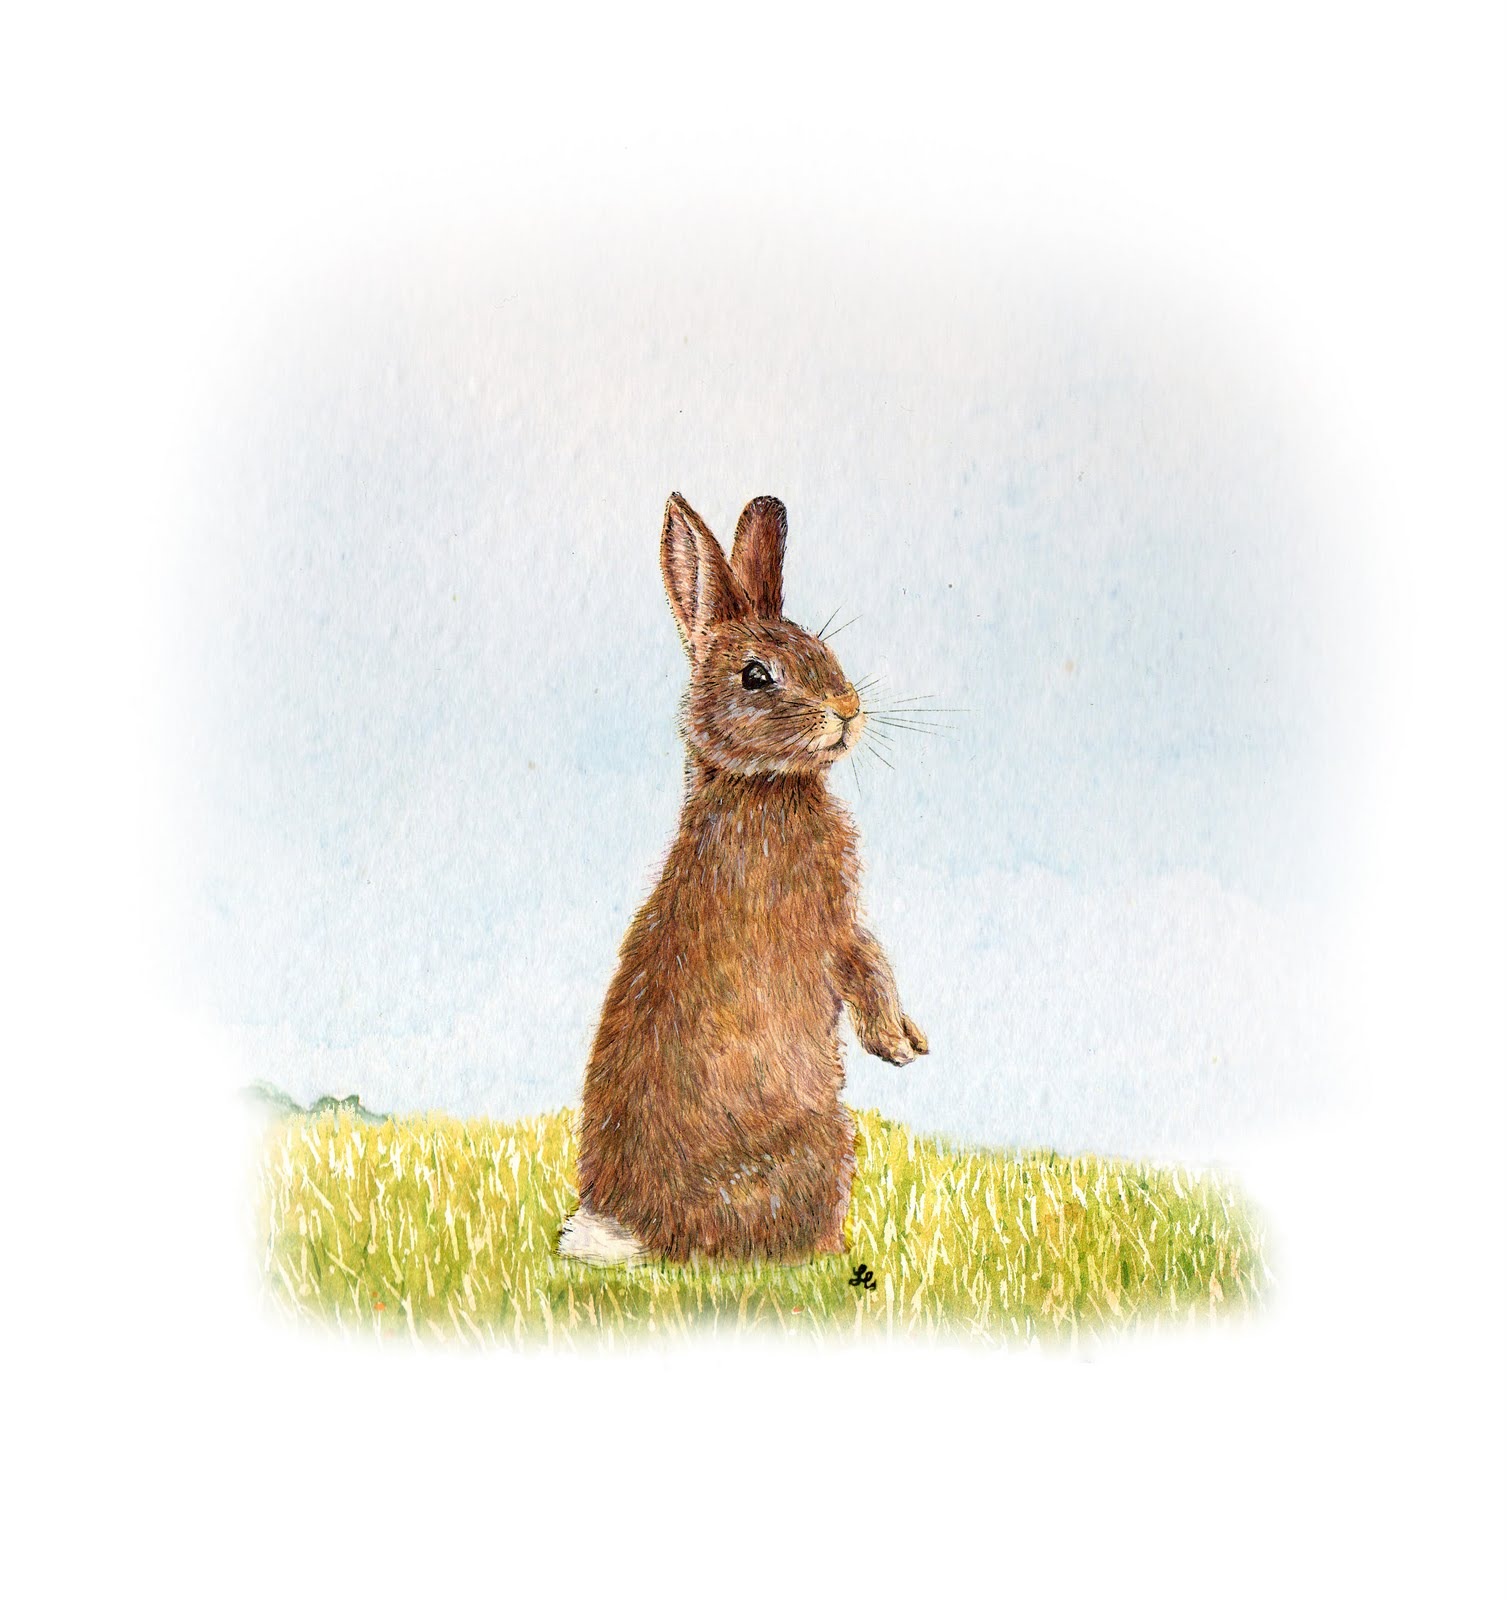 Hare illustration - photo#28